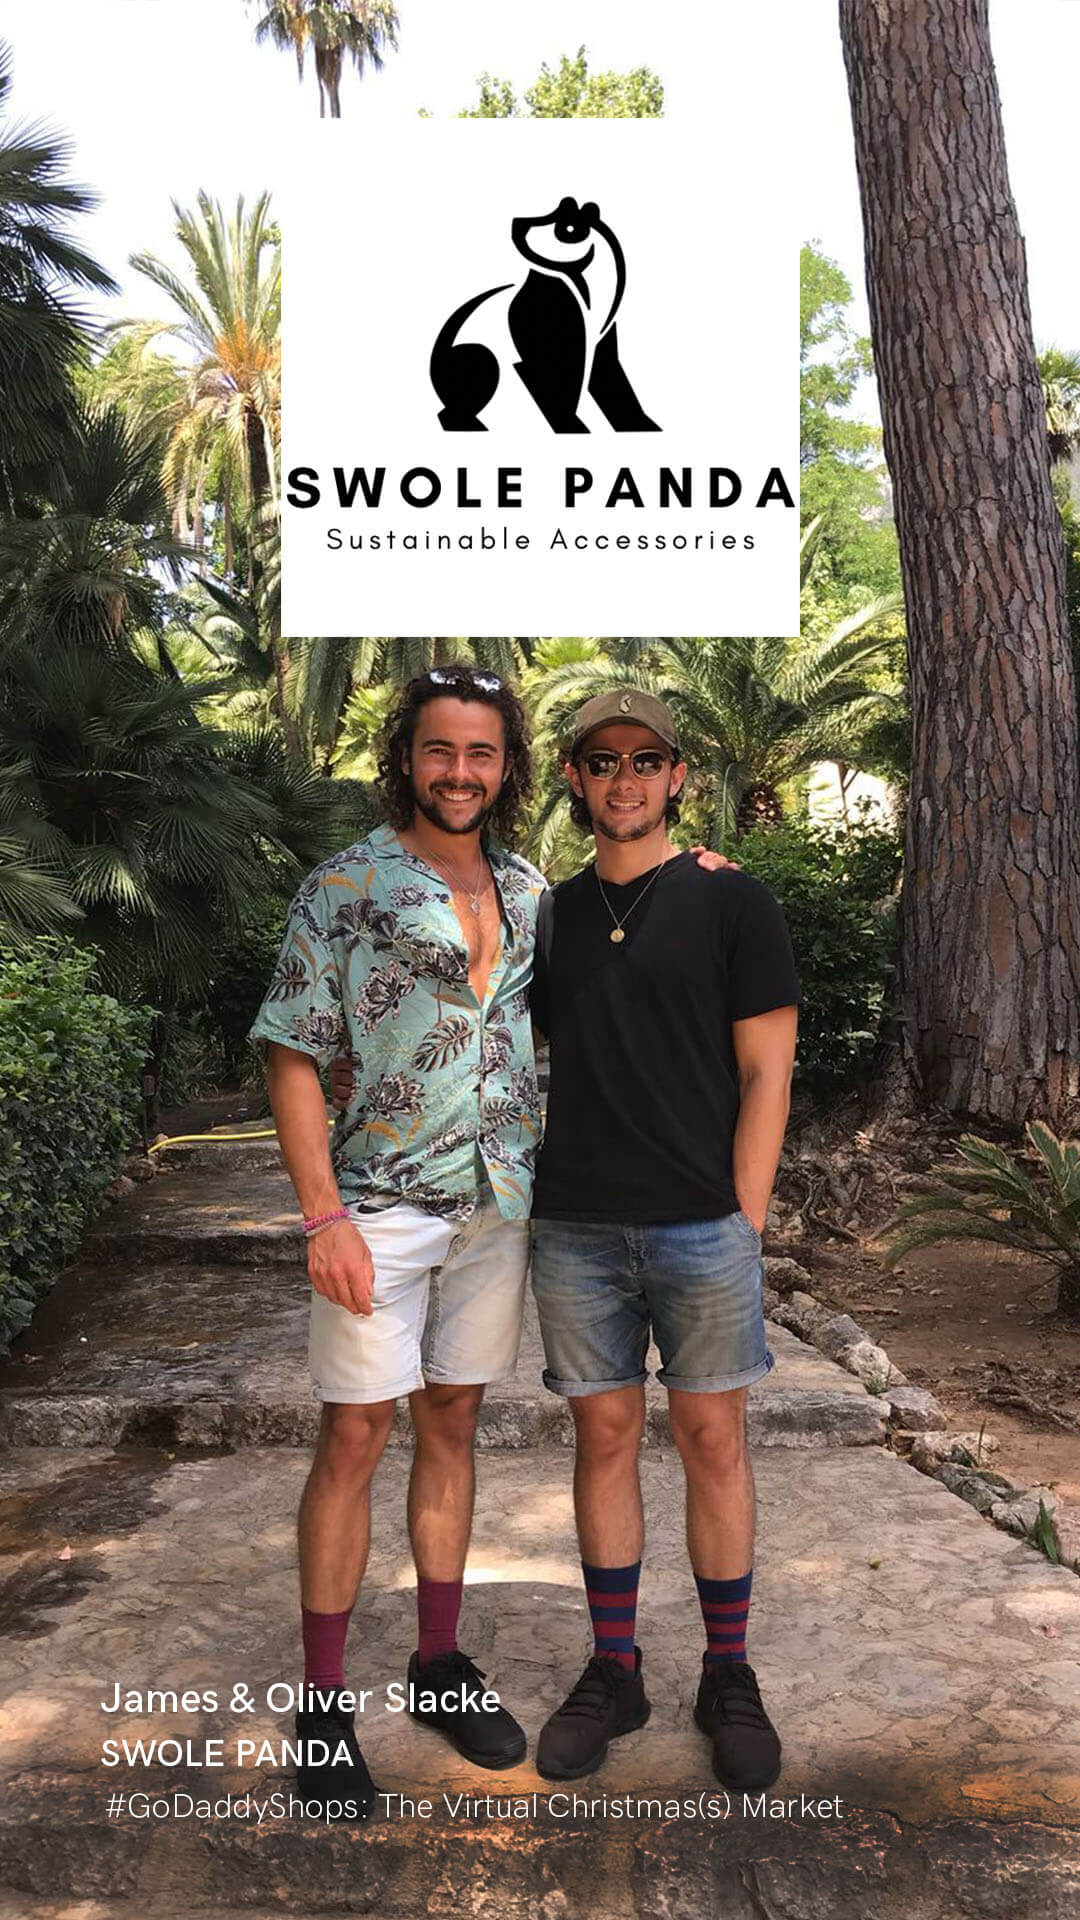 Oliver and James Slacke, founders of Swole Panda